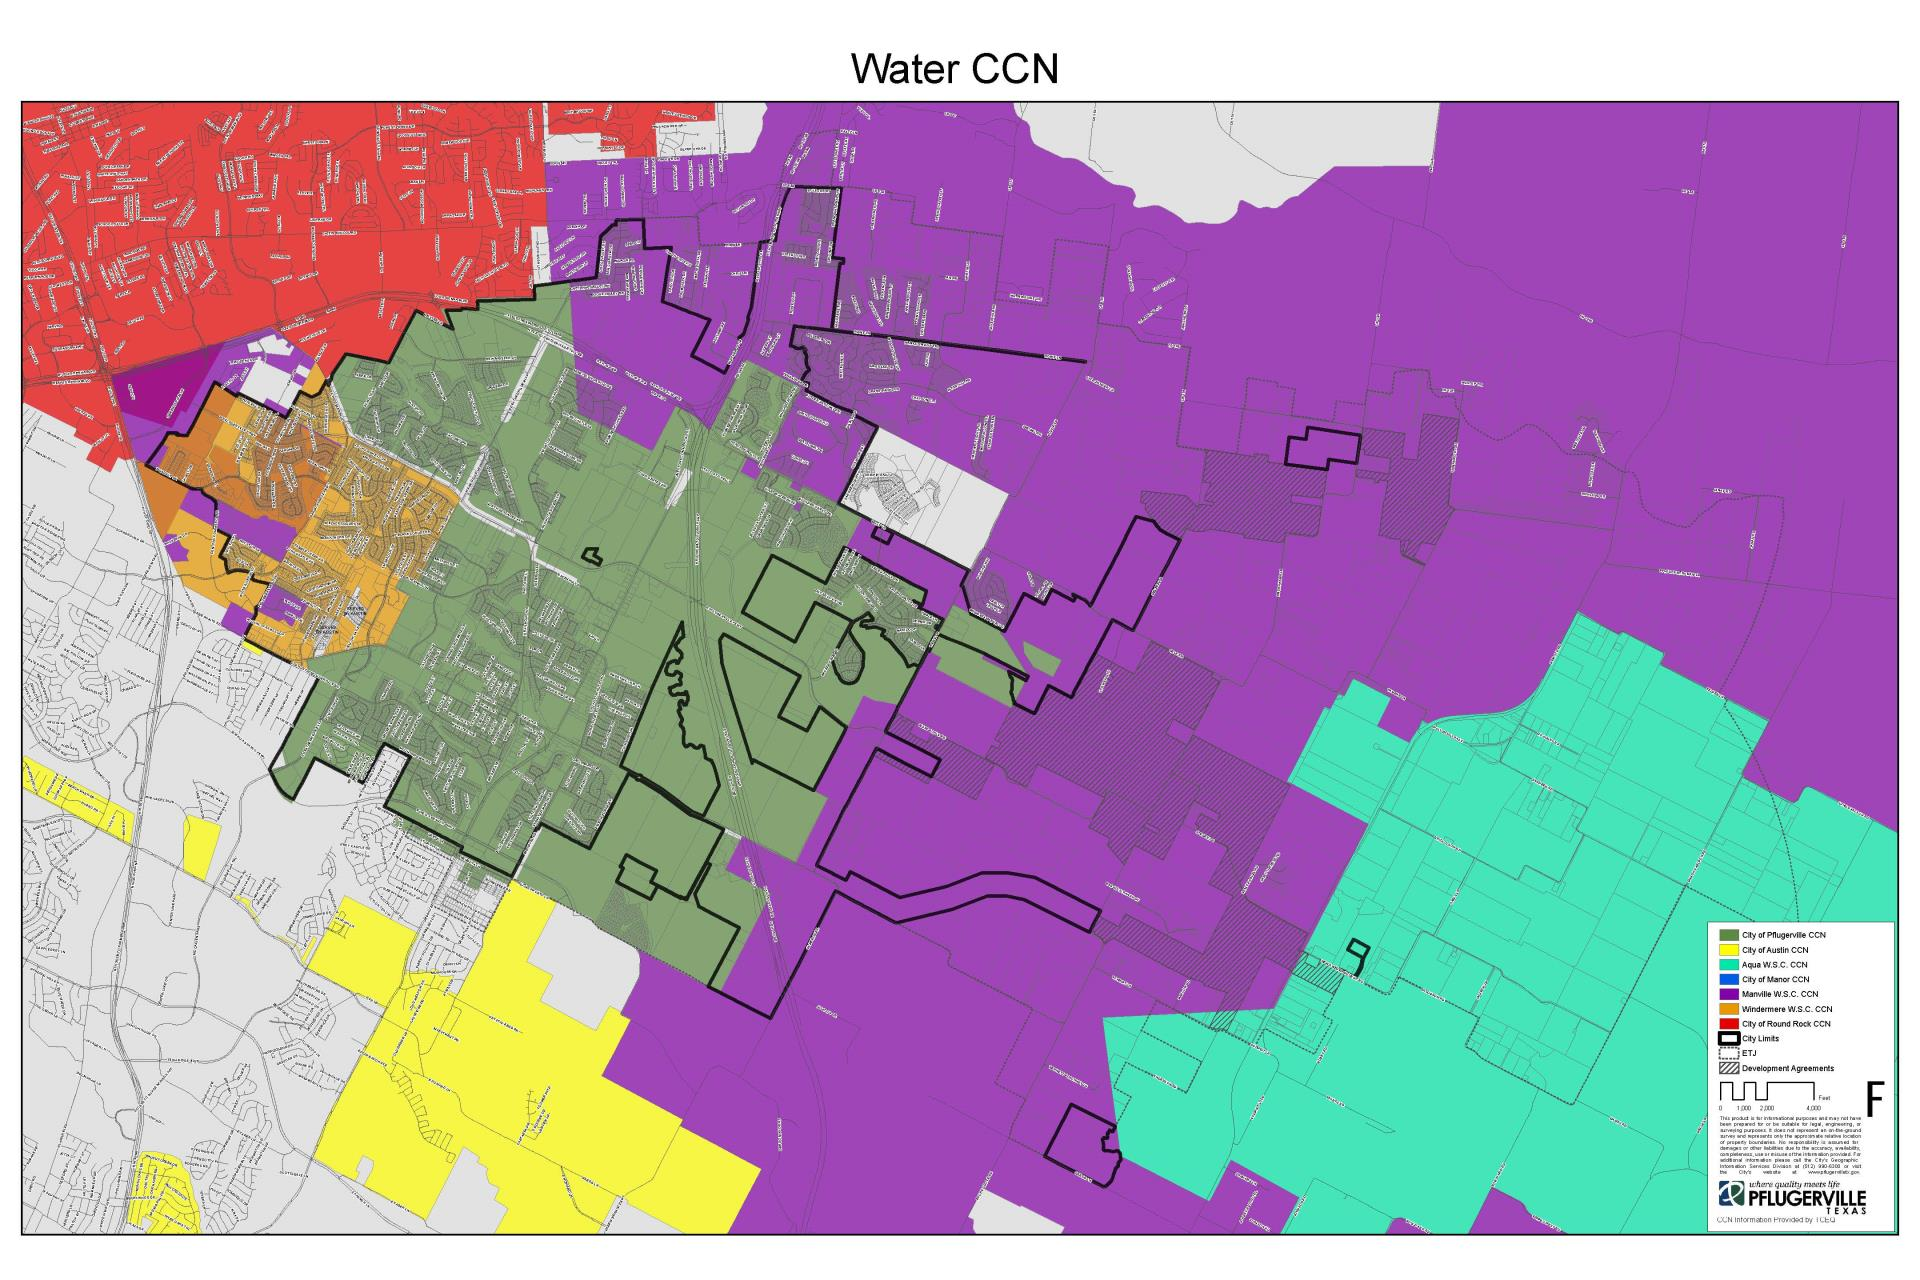 Water Provider Service Map | Pflugerville Utility Billing on map of grapevine texas, map of valley mills texas, map of the hill country texas, map of cleveland texas, map of balcones heights texas, map of mansfield dam texas, map of mcallen texas, map of rosenberg texas, map of waco texas, map of north austin texas, map of sachse texas, map of highland haven texas, map of weatherford texas, map of paint rock texas, map of amarillo texas, map of quemado texas, map of friendswood texas, map of northeast houston texas, map of pyote texas, map of conroe texas,